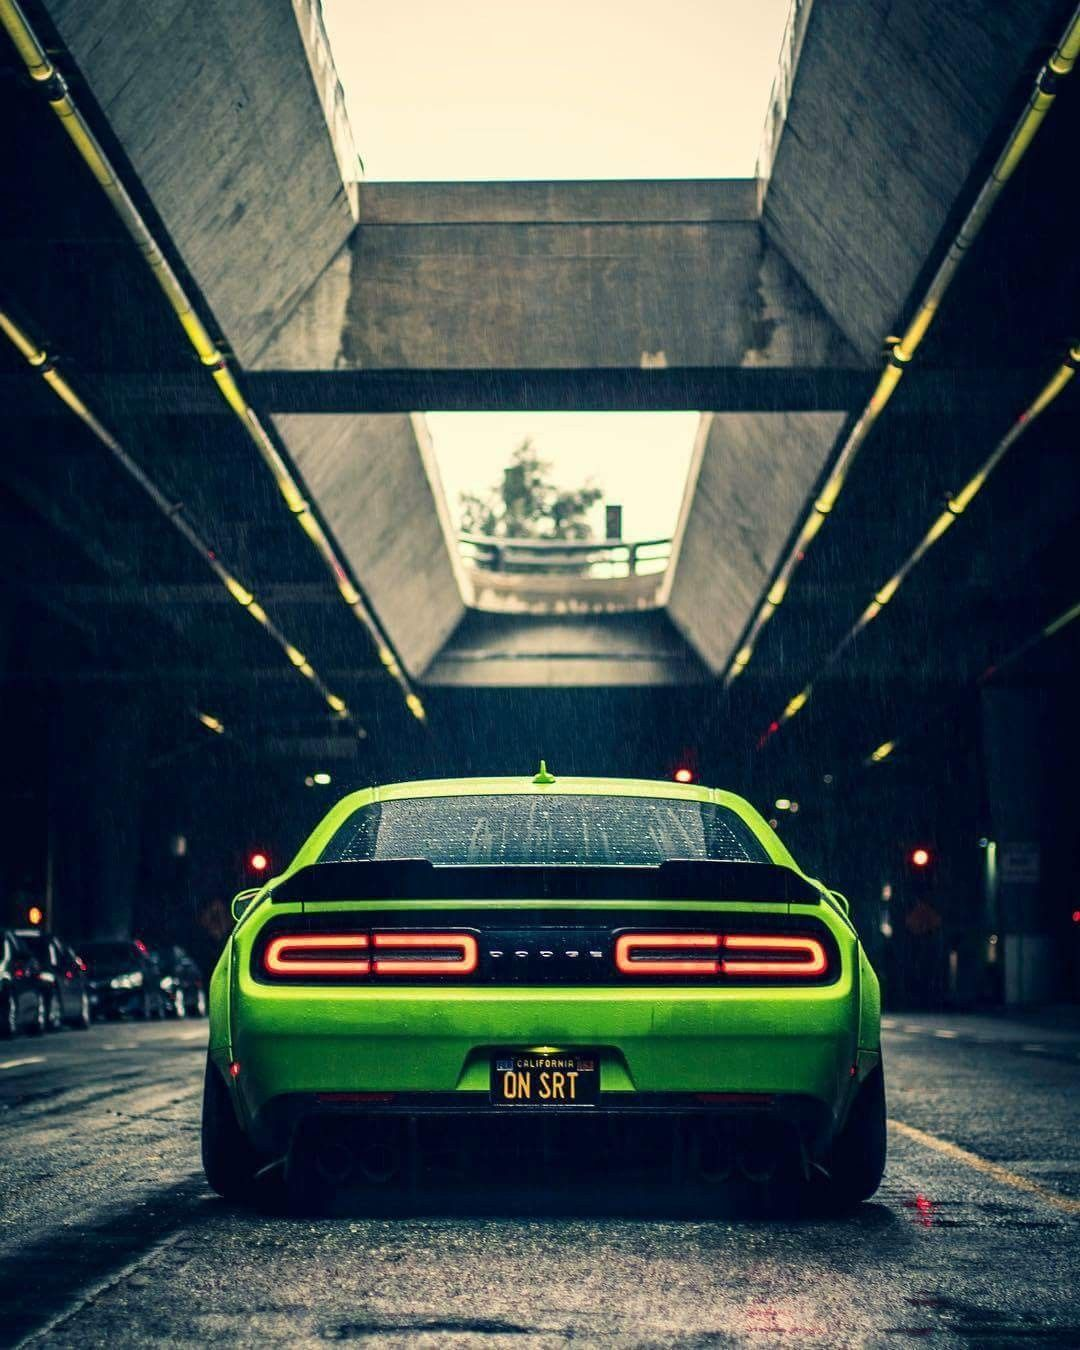 Pin By Silas Gaddy On Vehicles Dodge Challenger Dodge Challenger Hellcat Hellcat Challenger